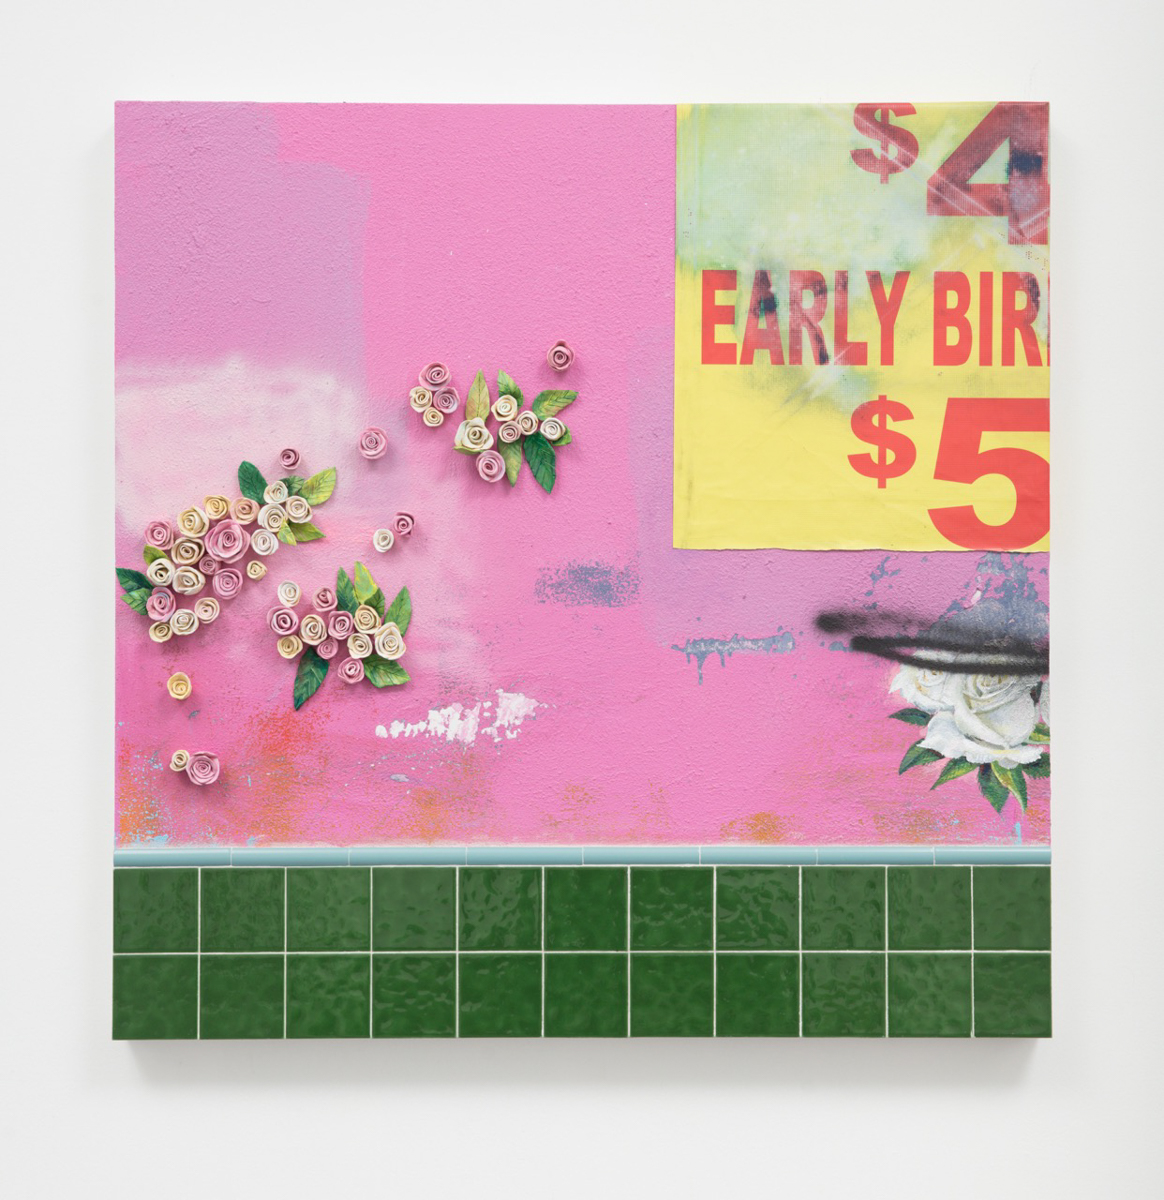 Patrick Martinez, Chinatown Flowers (early bird), 2017. Ceramic, found banner tarp, ceramic tile and mixed media on panel with wall stucco. 48 × 48 in. Courtesy of the artist and Charlie James Gallery, Los Angeles.  Photo by Michael Underwood.